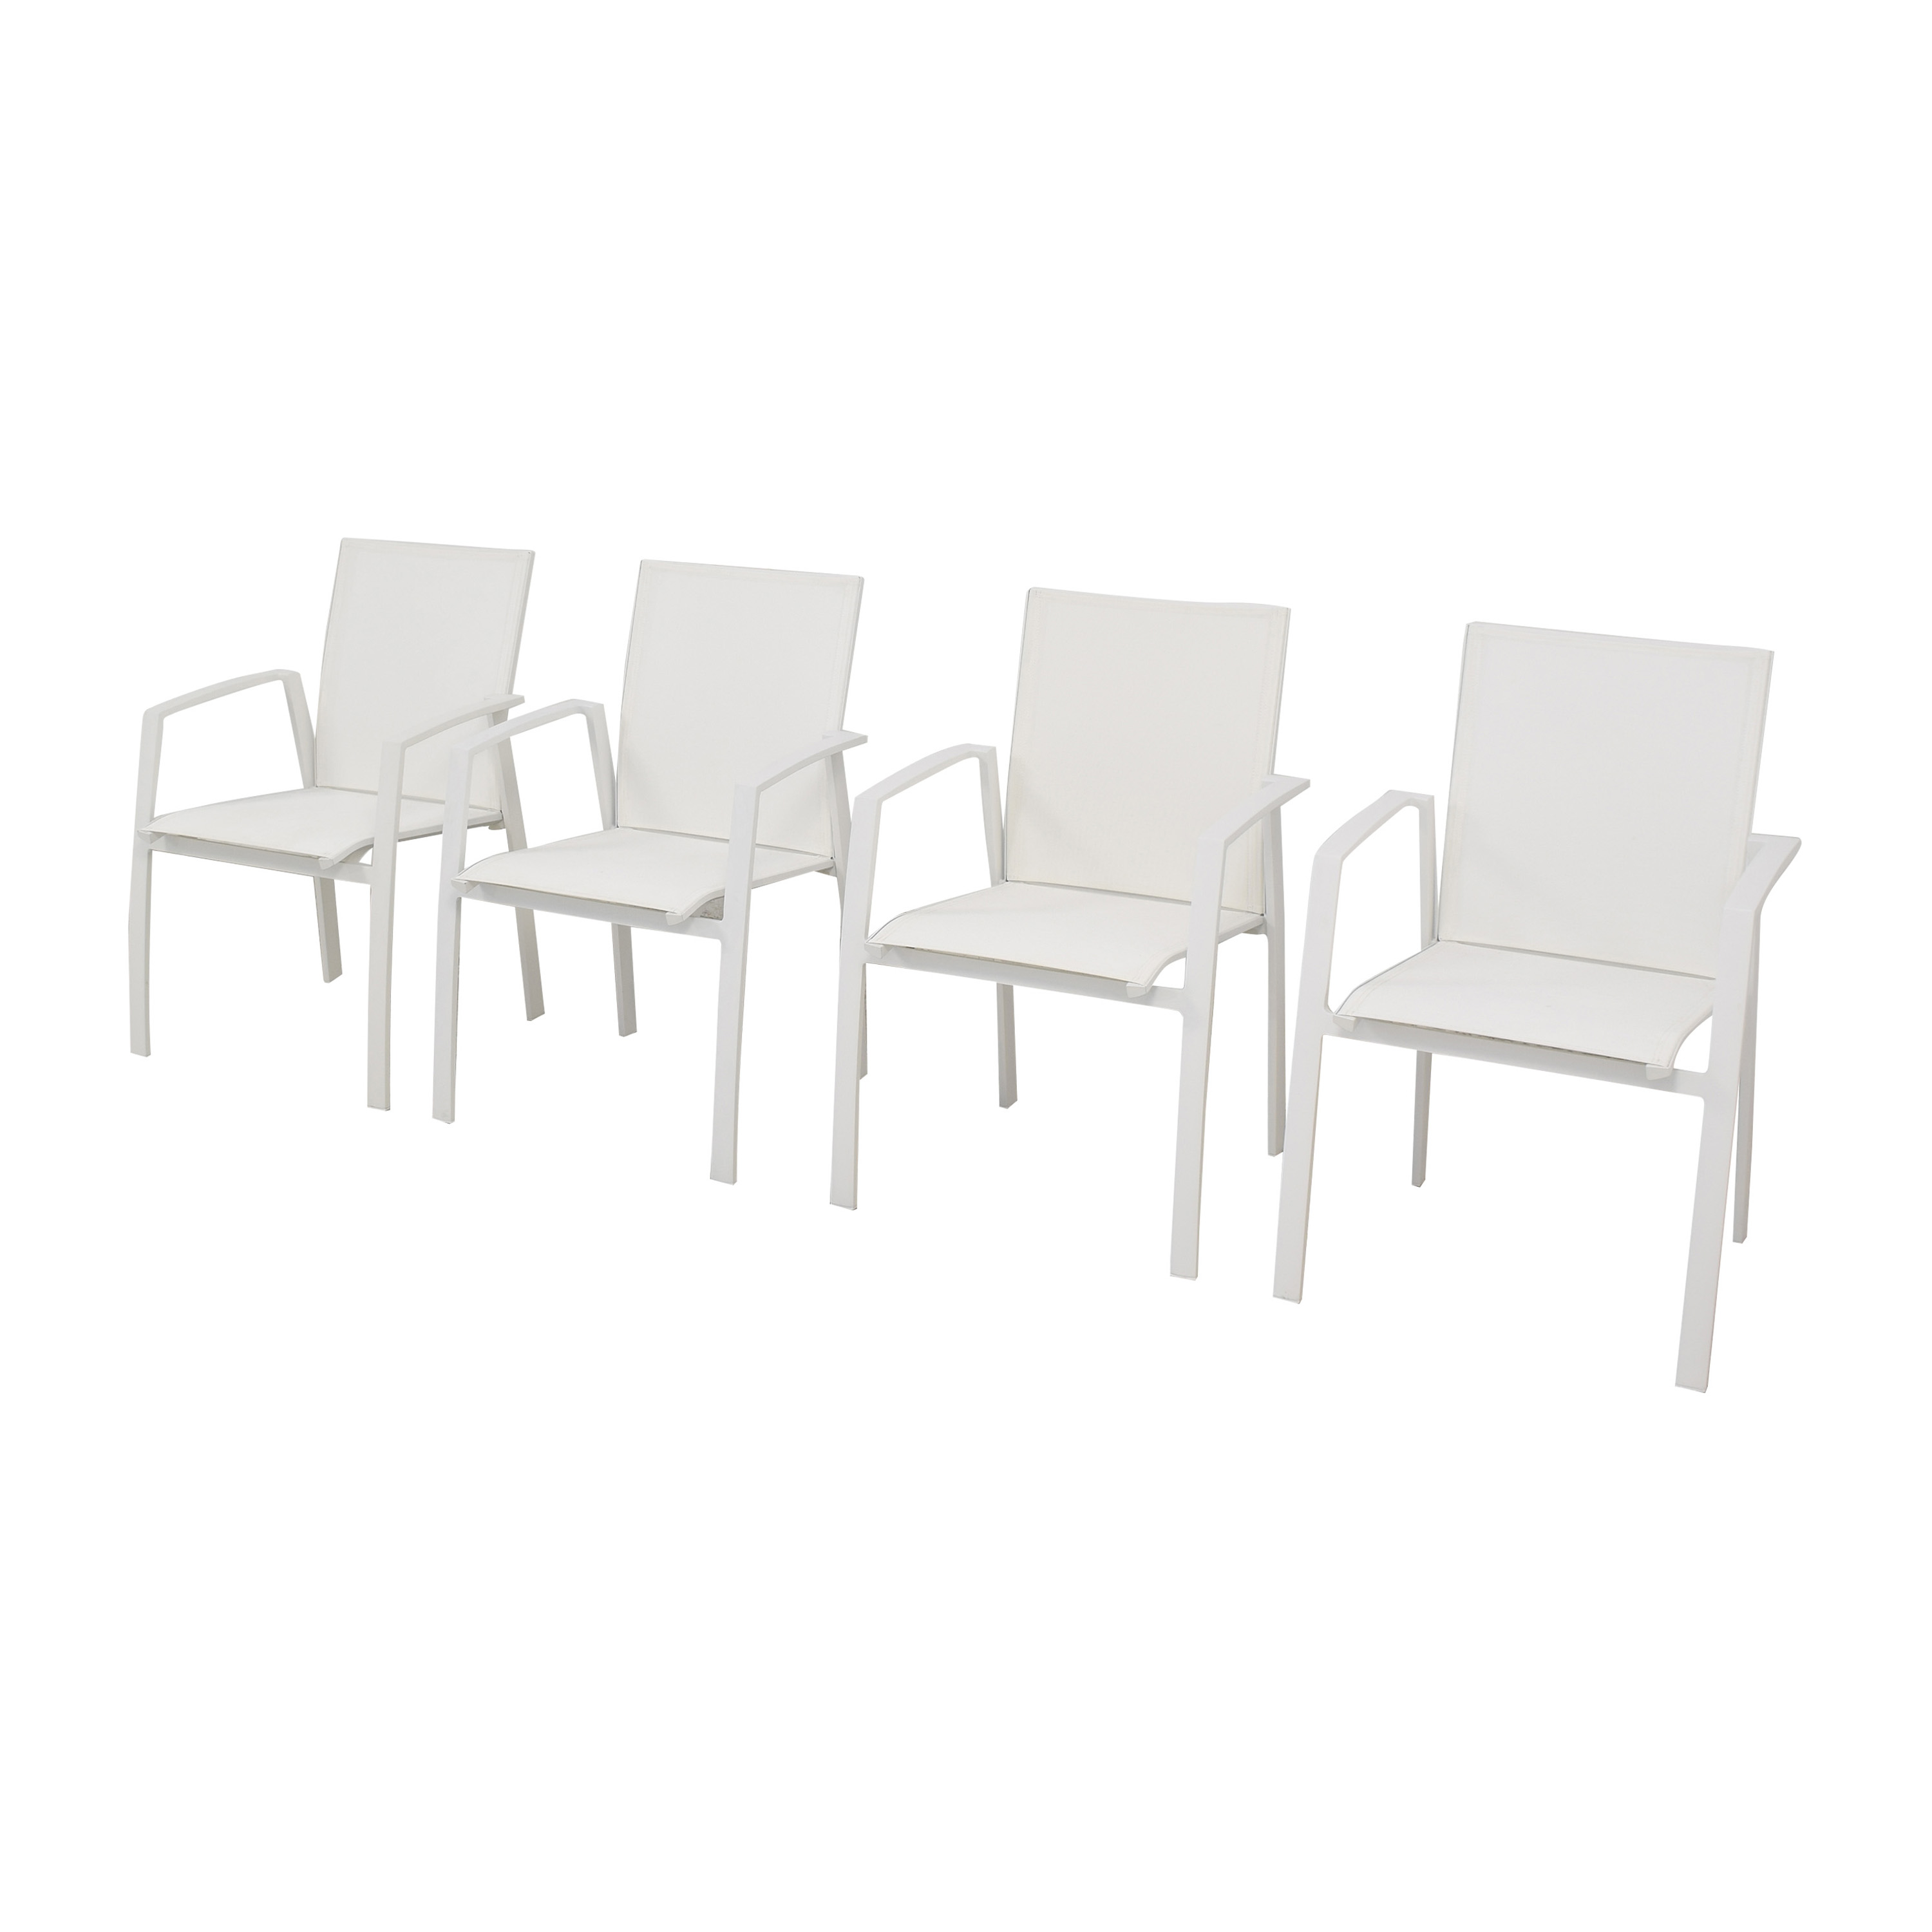 Frontgate Frontgate Newport Dining Chairs second hand